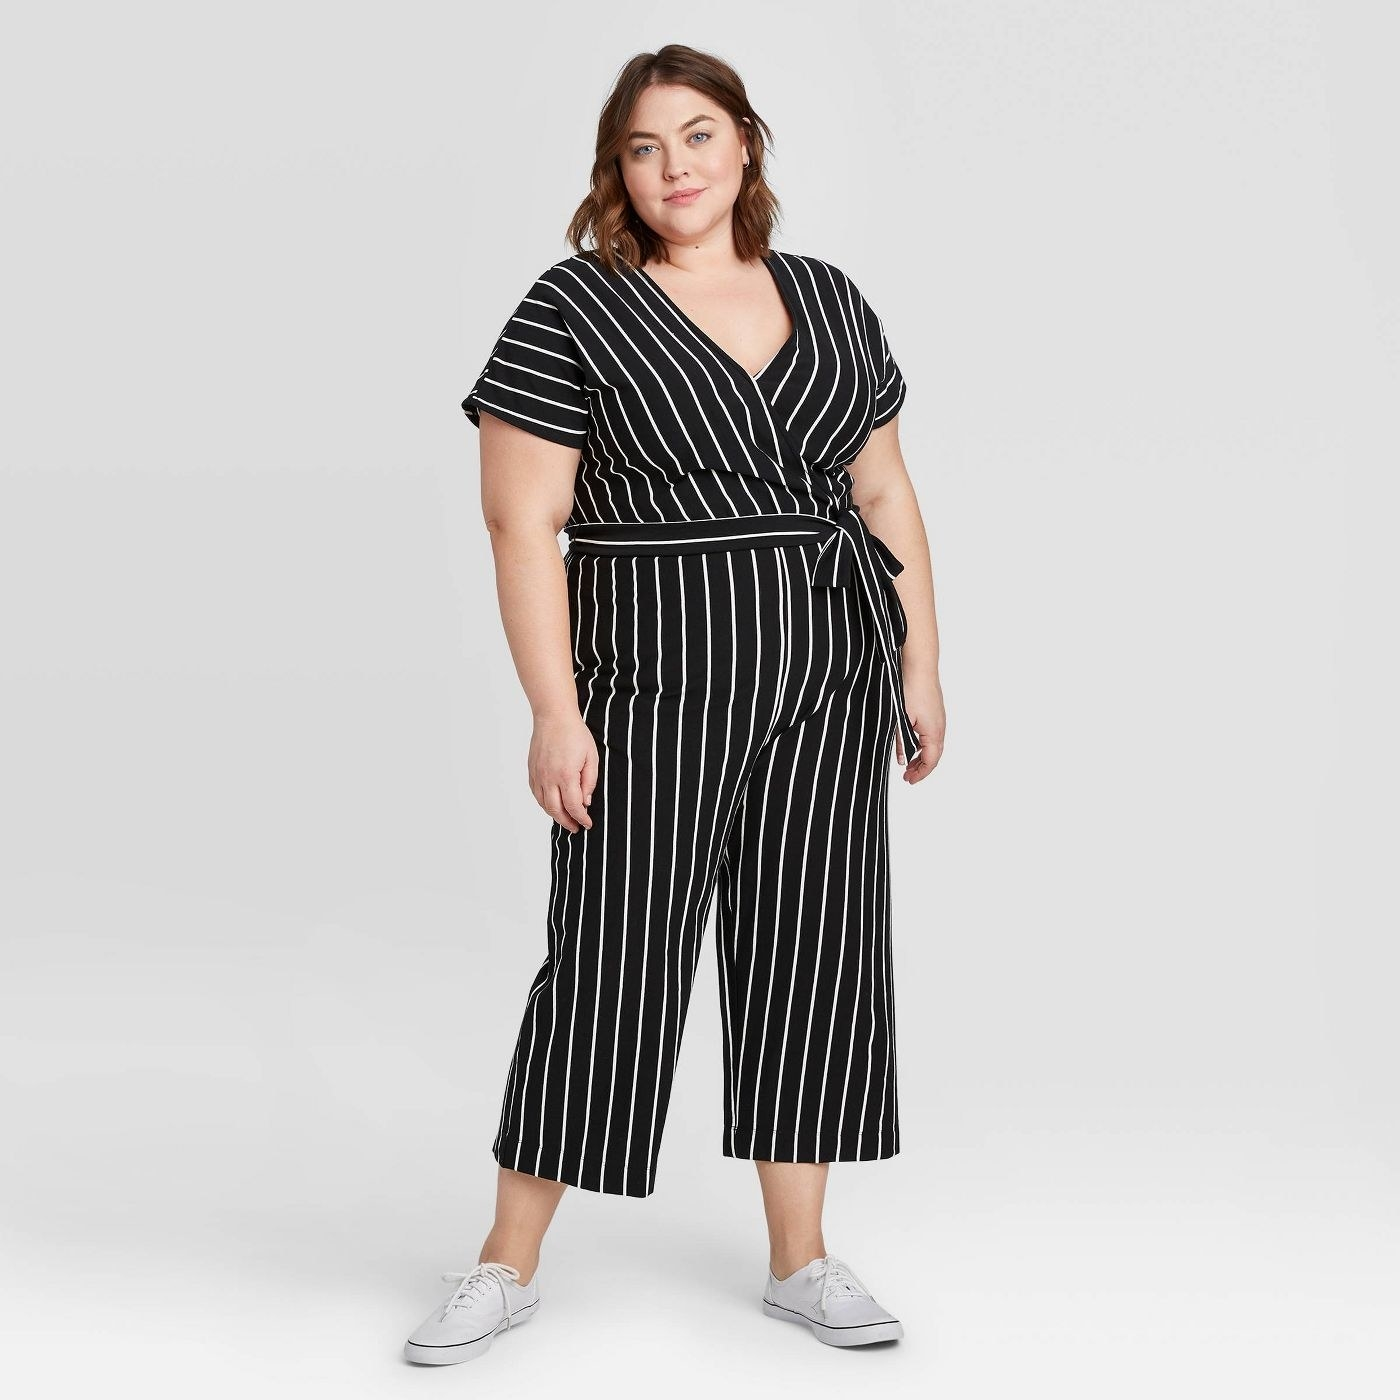 A model in a black jumpsuit with thin vertical white stripes